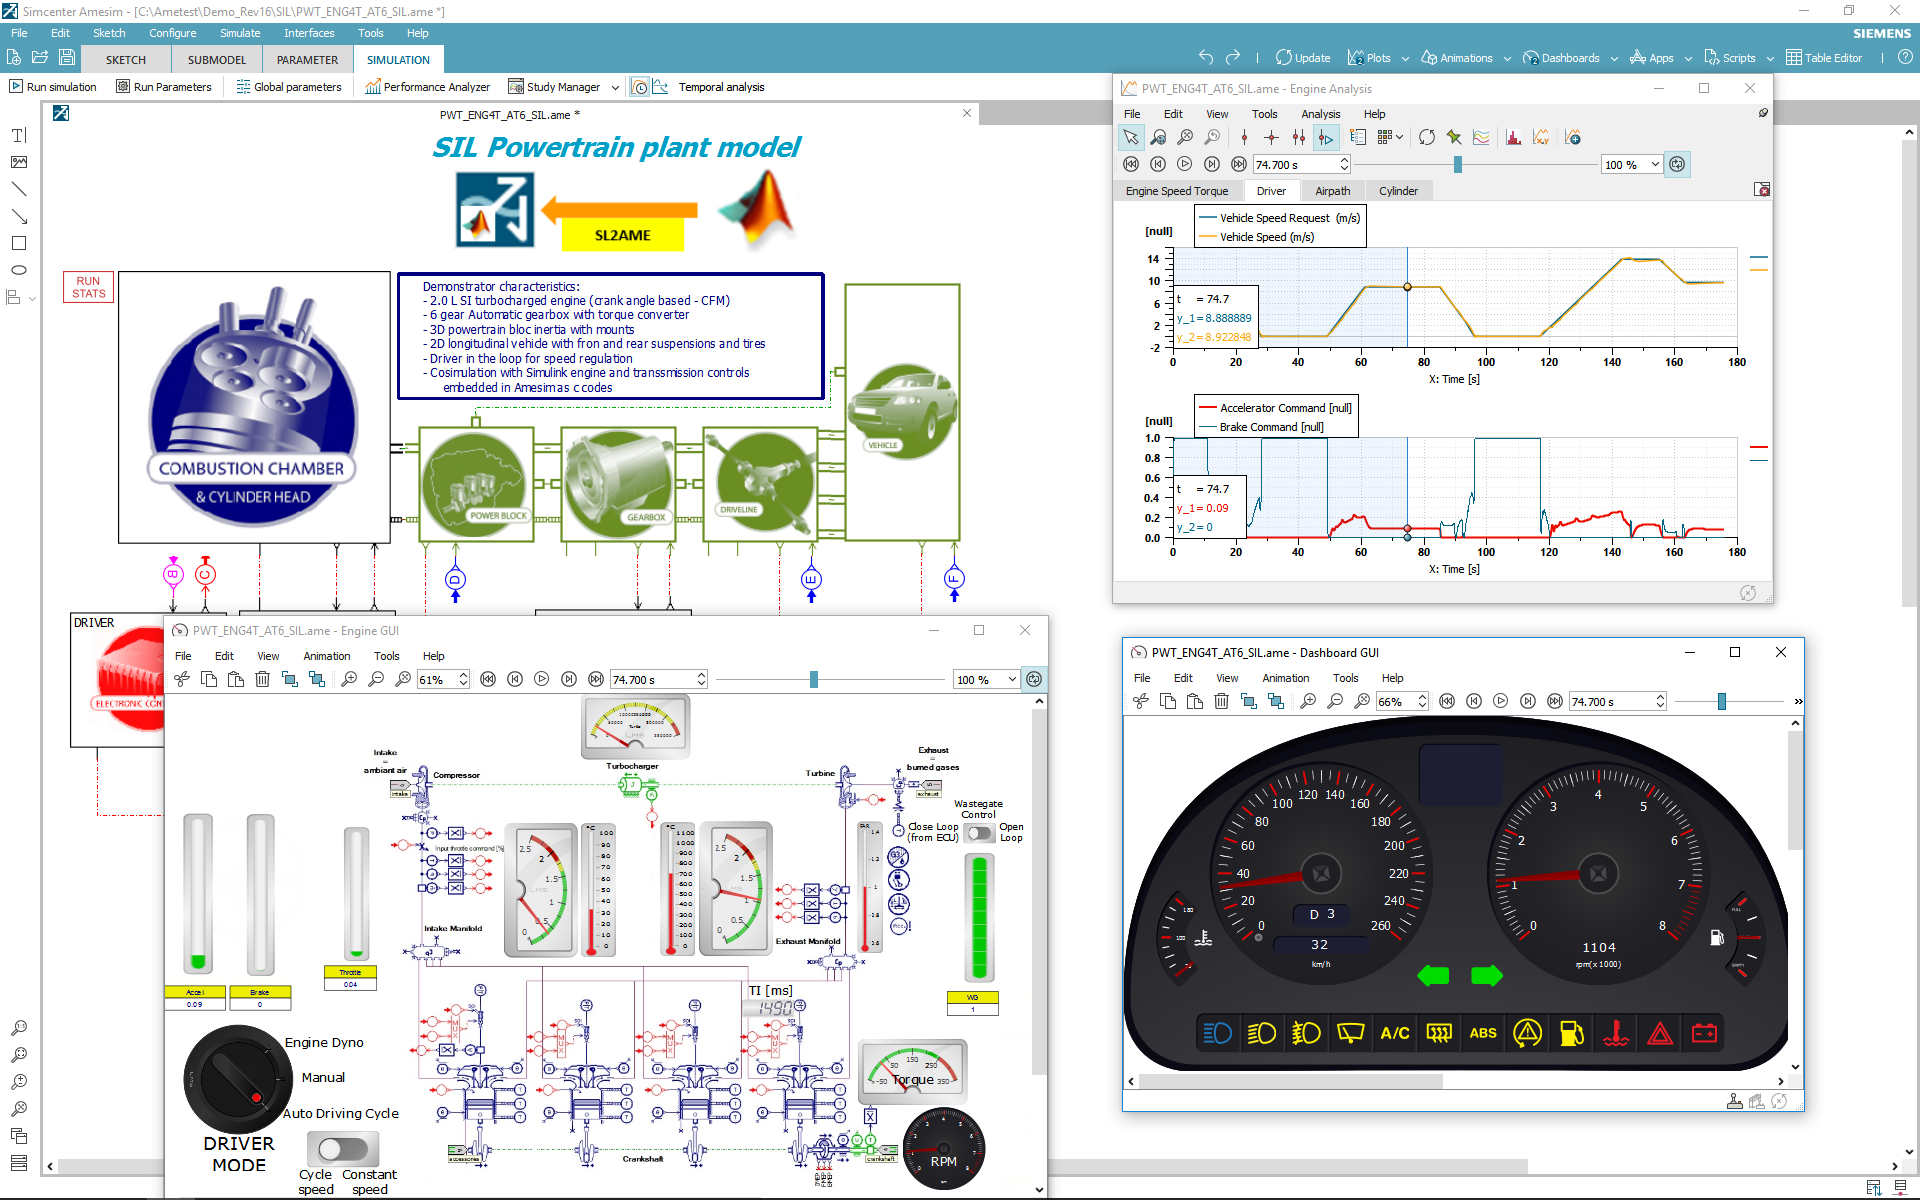 Engine Design And Controls Internal Combustion System Diagram An Efficient Simulink Interface Straightforward Export Workflows Ease The Integration Of Models In Your Processes